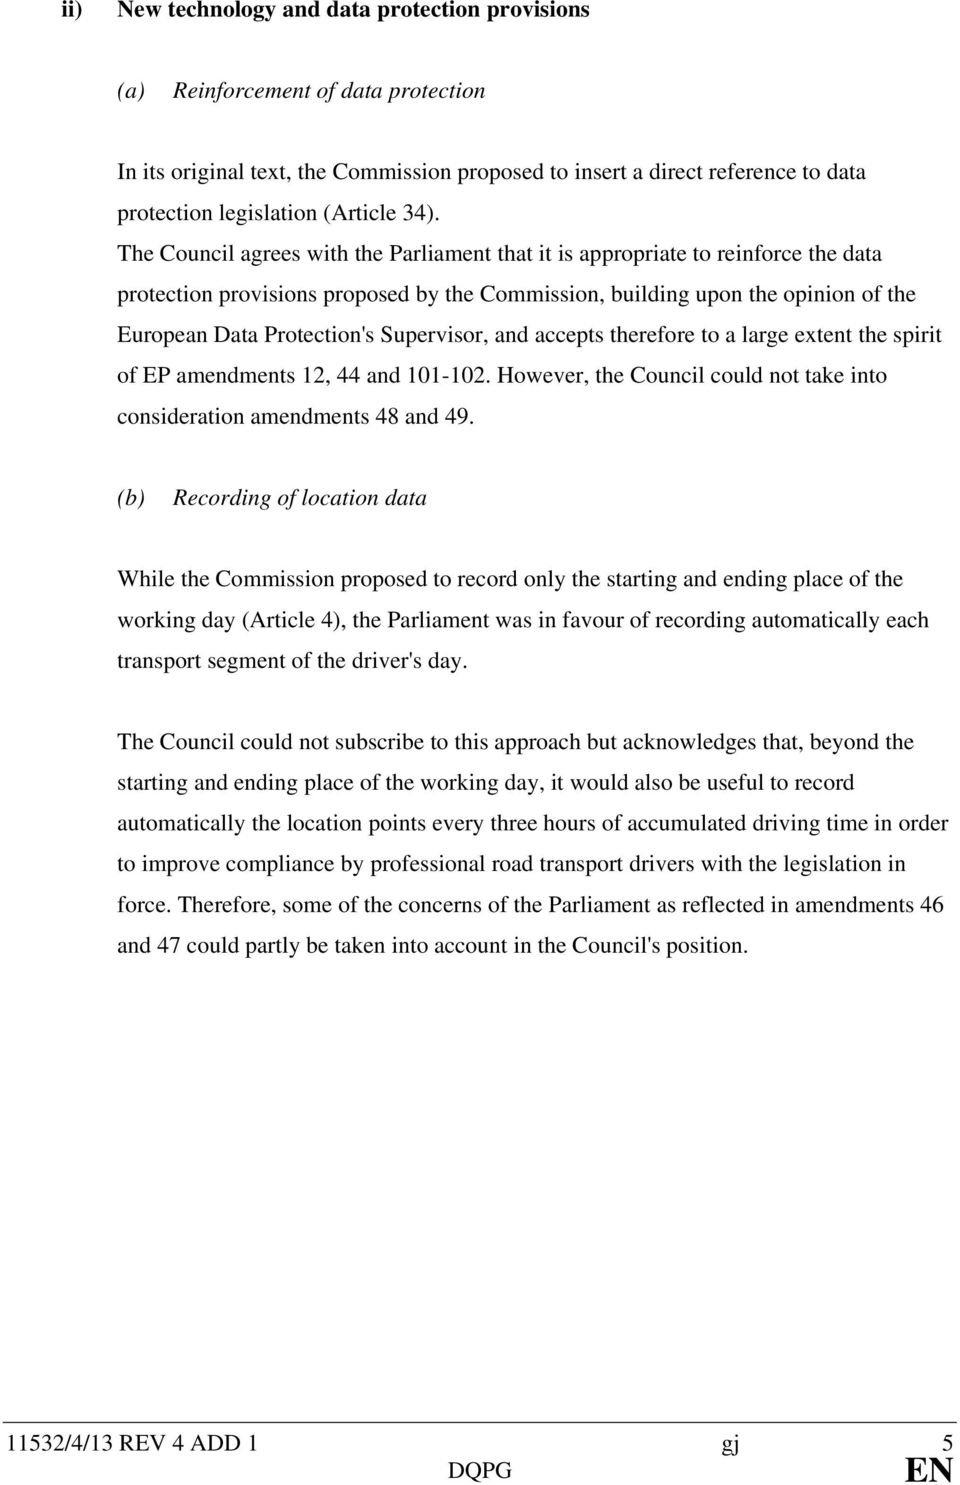 The Council agrees with the Parliament that it is appropriate to reinforce the data protection provisions proposed by the Commission, building upon the opinion of the European Data Protection's